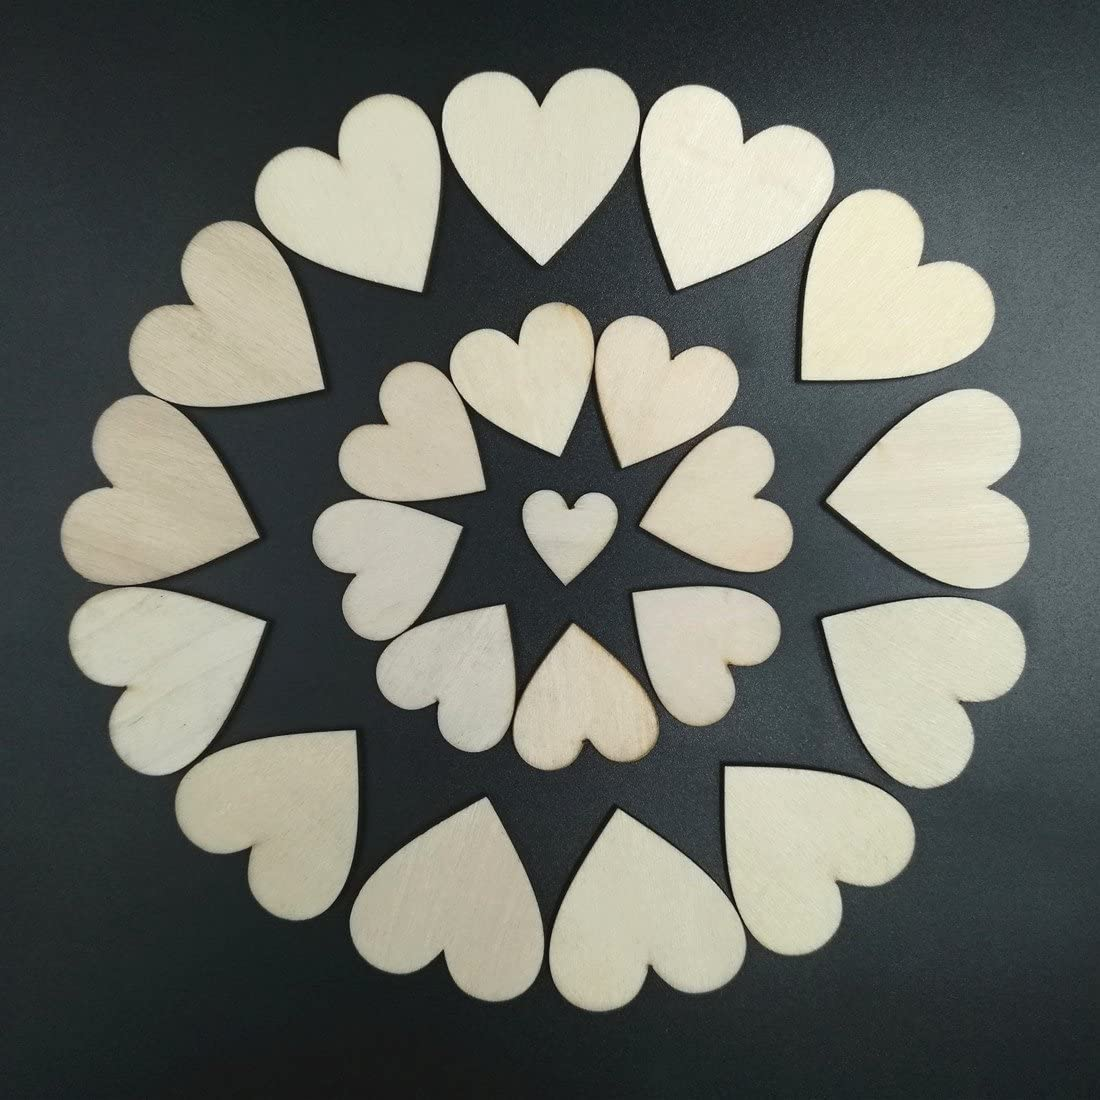 Wood Heart Kalevel 100pcs Rustic Wedding Decorations Wood Party Decorations Wedding Supplies Blank Wedding Wooden Hearts Table Scatter Engagement Party Decorations Rustic Party Supplies